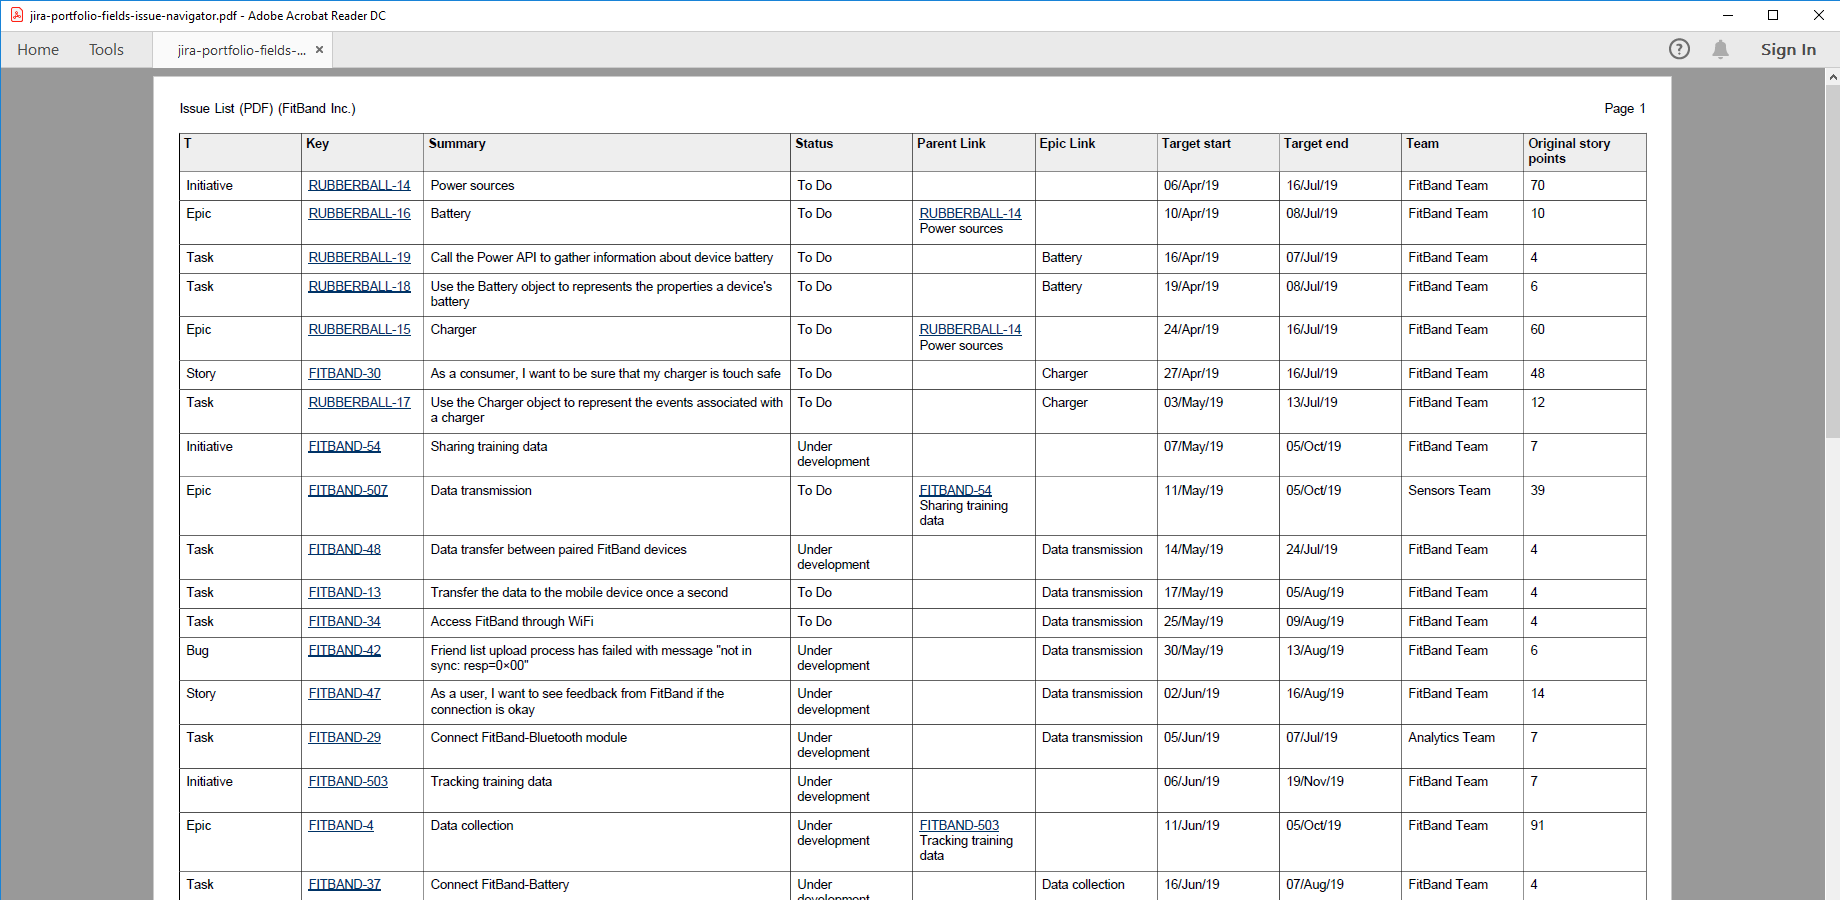 Issue list with Advanced Roadmaps fields